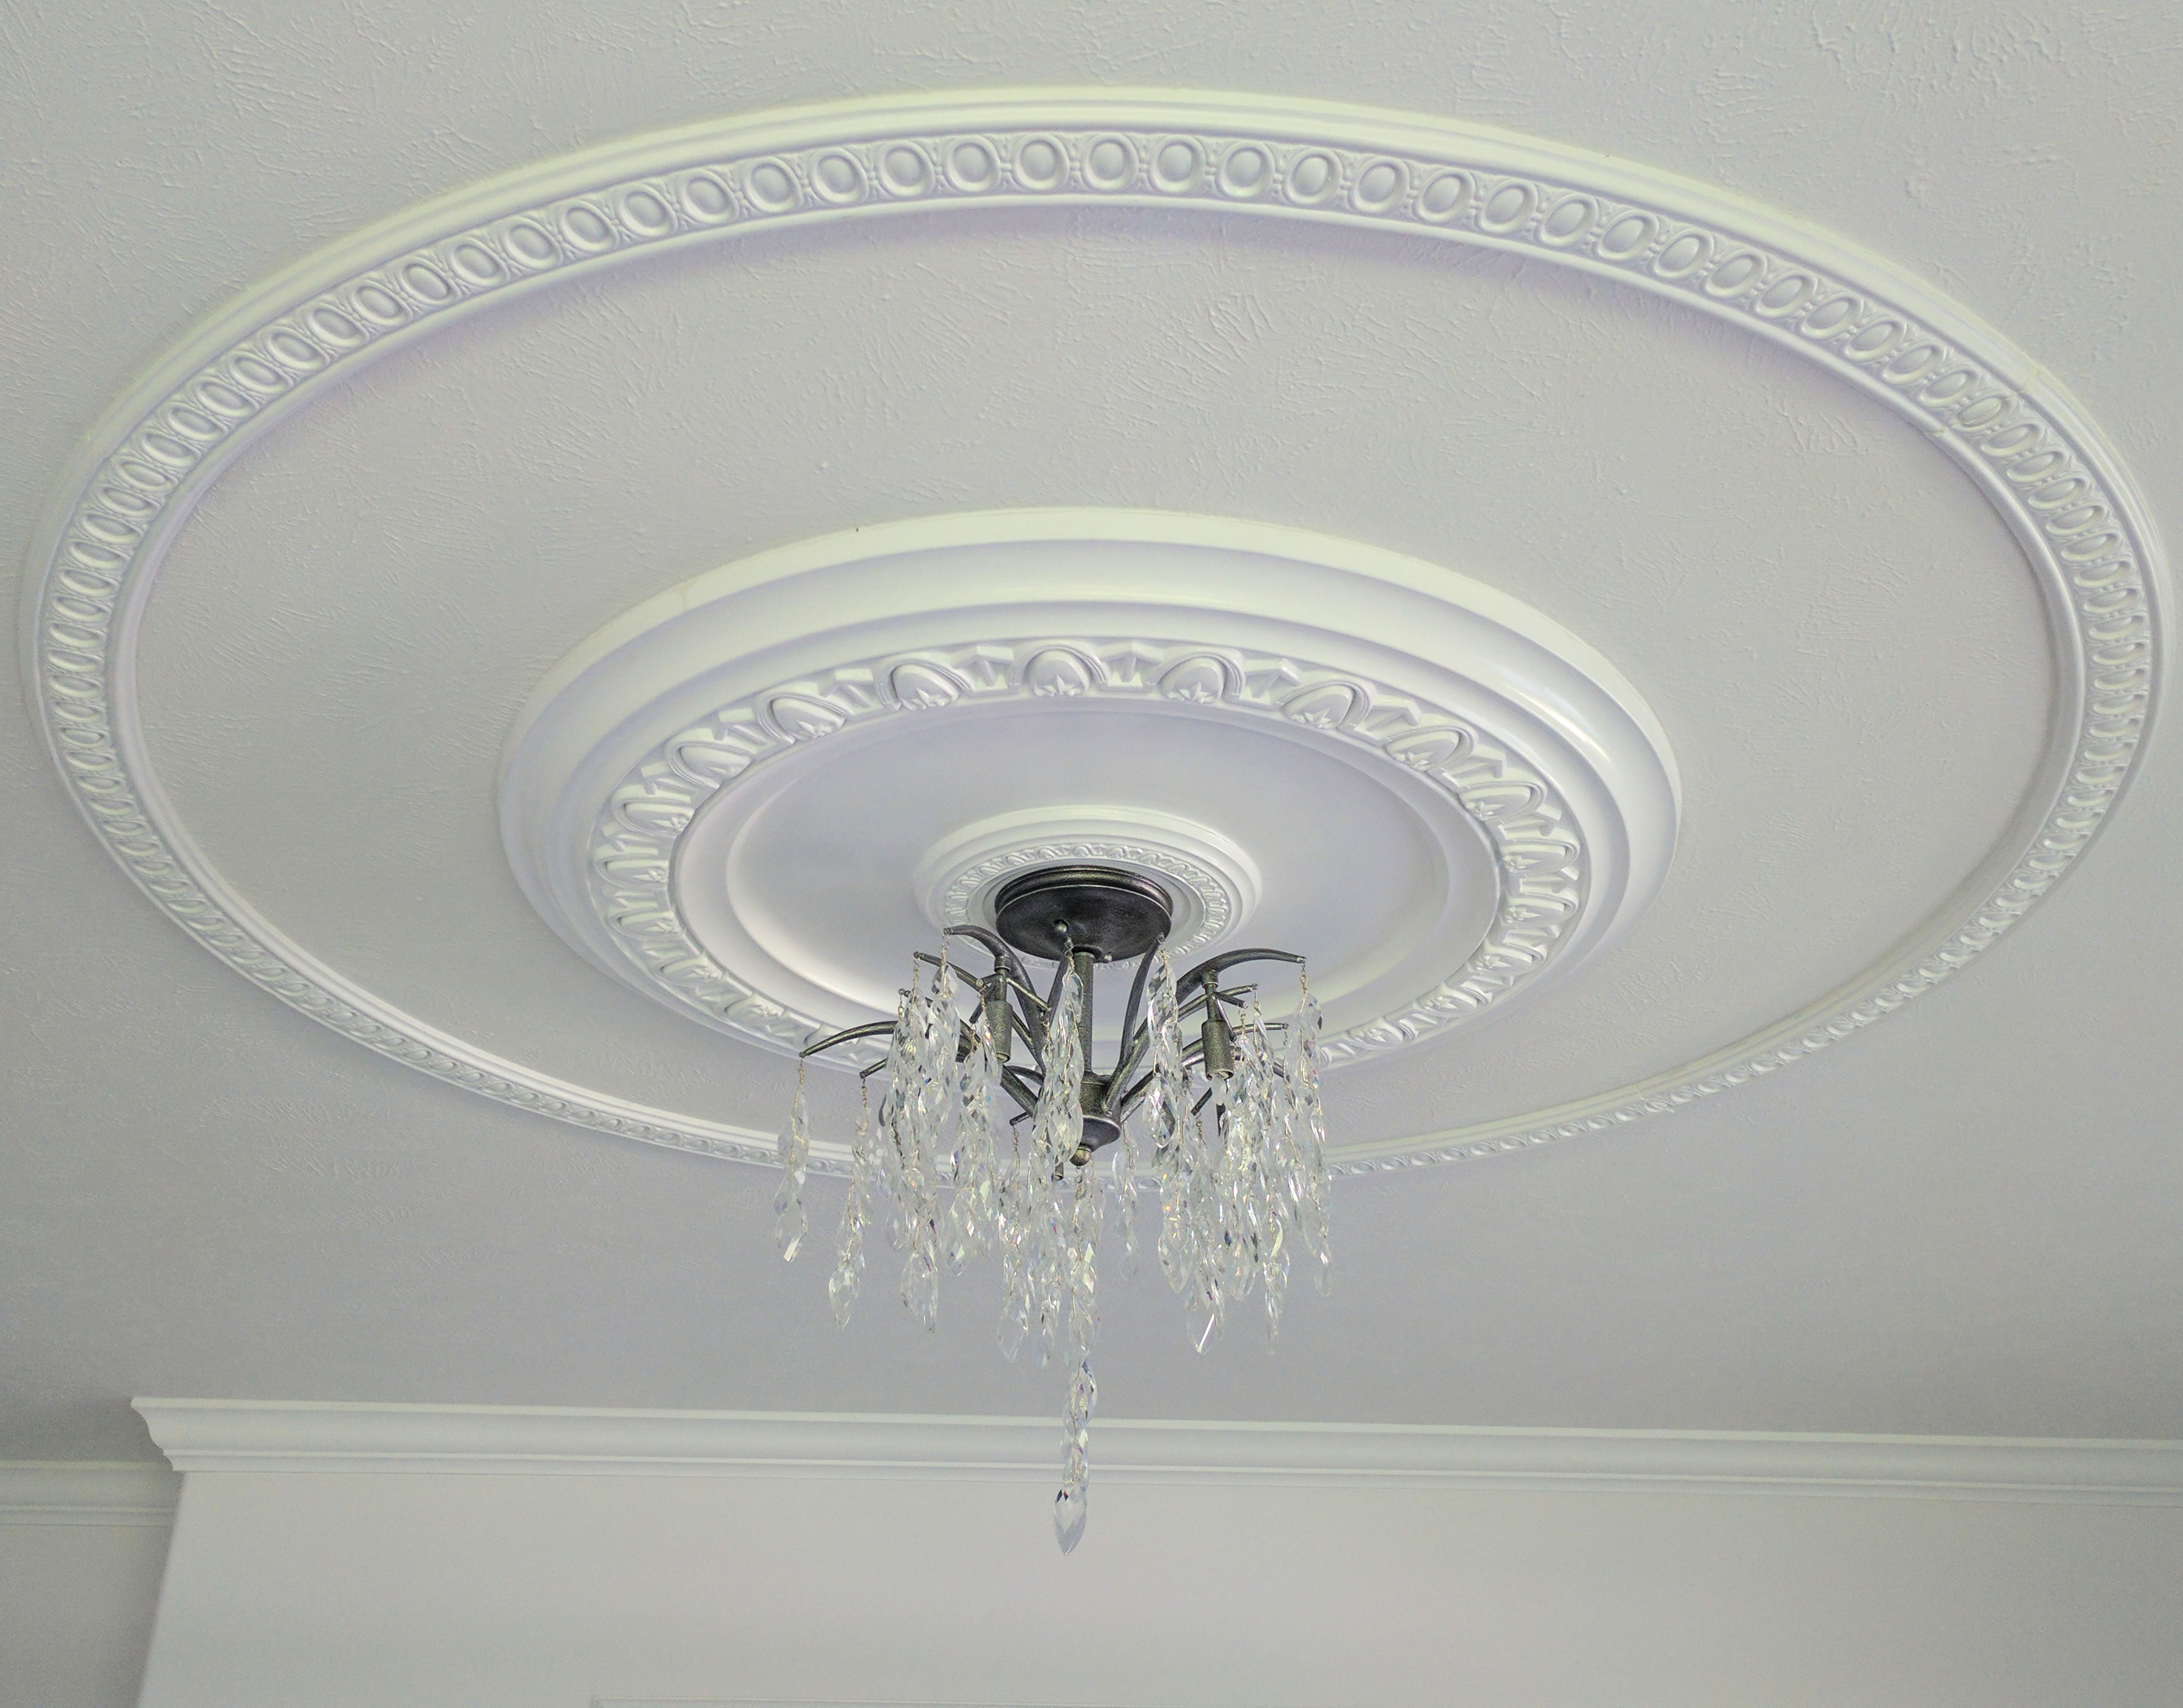 riccimarie ricci medalions icm compass medallions product rose ceilings ceiling fullxfull marie